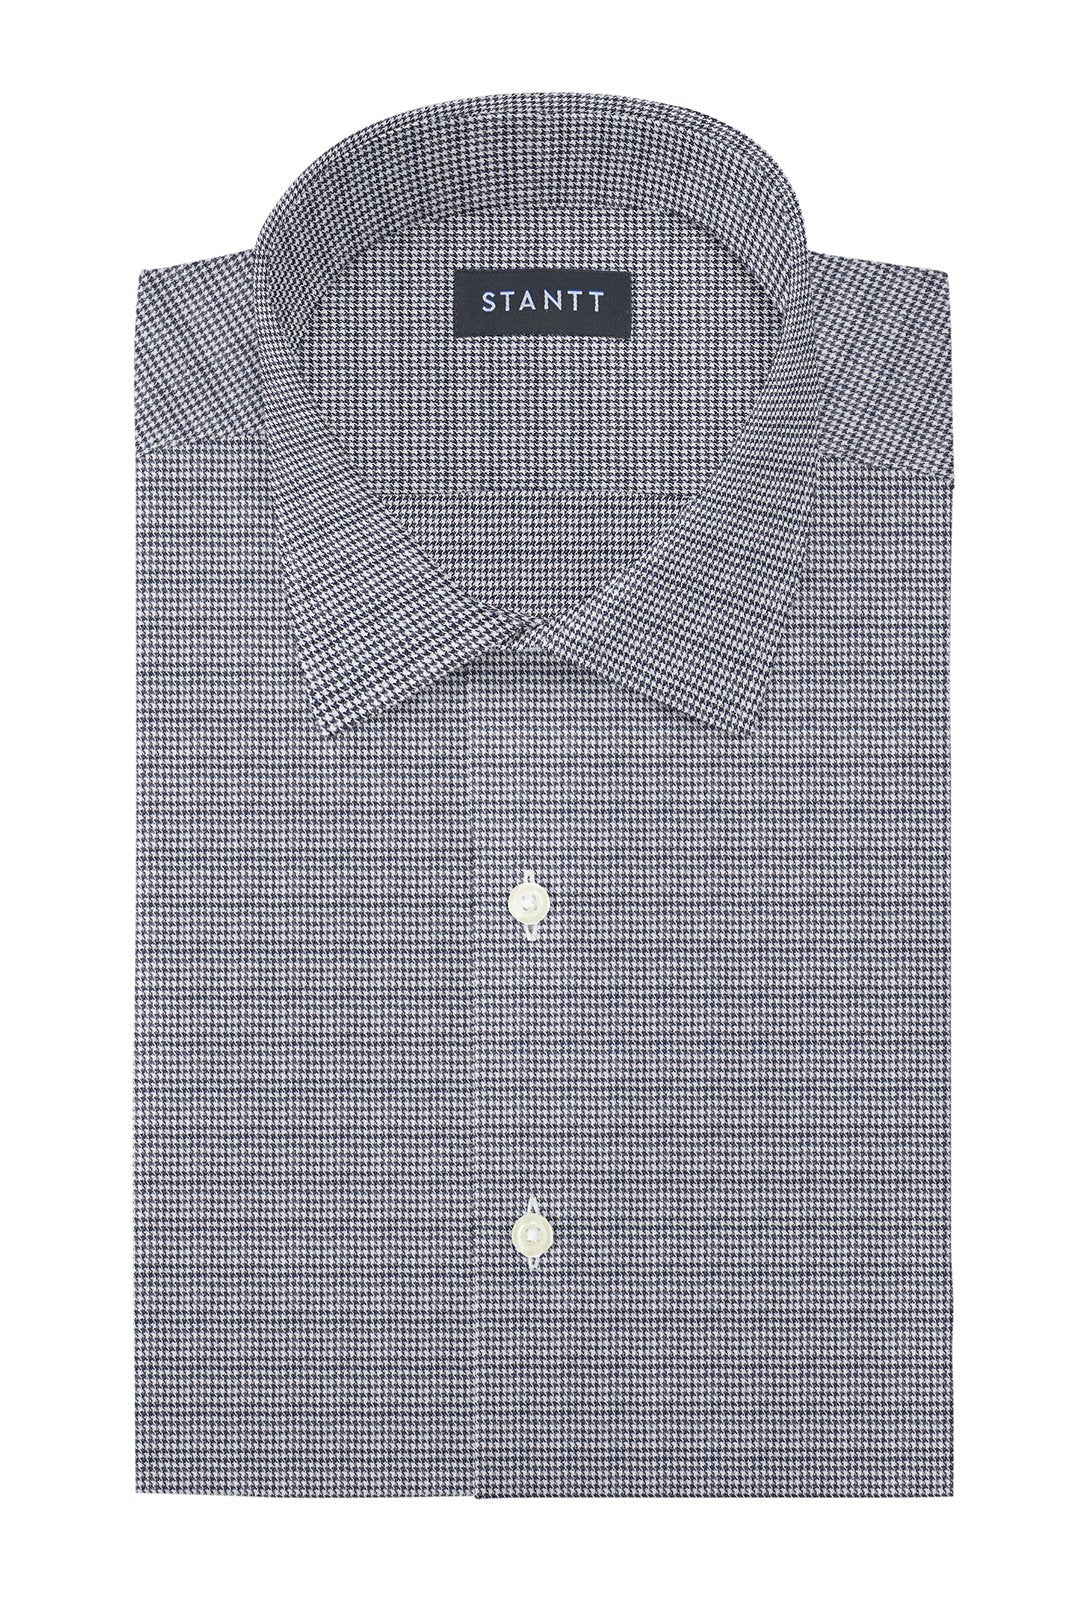 Grey Houndstooth Flannel: Modified-Spread Collar, French Cuff